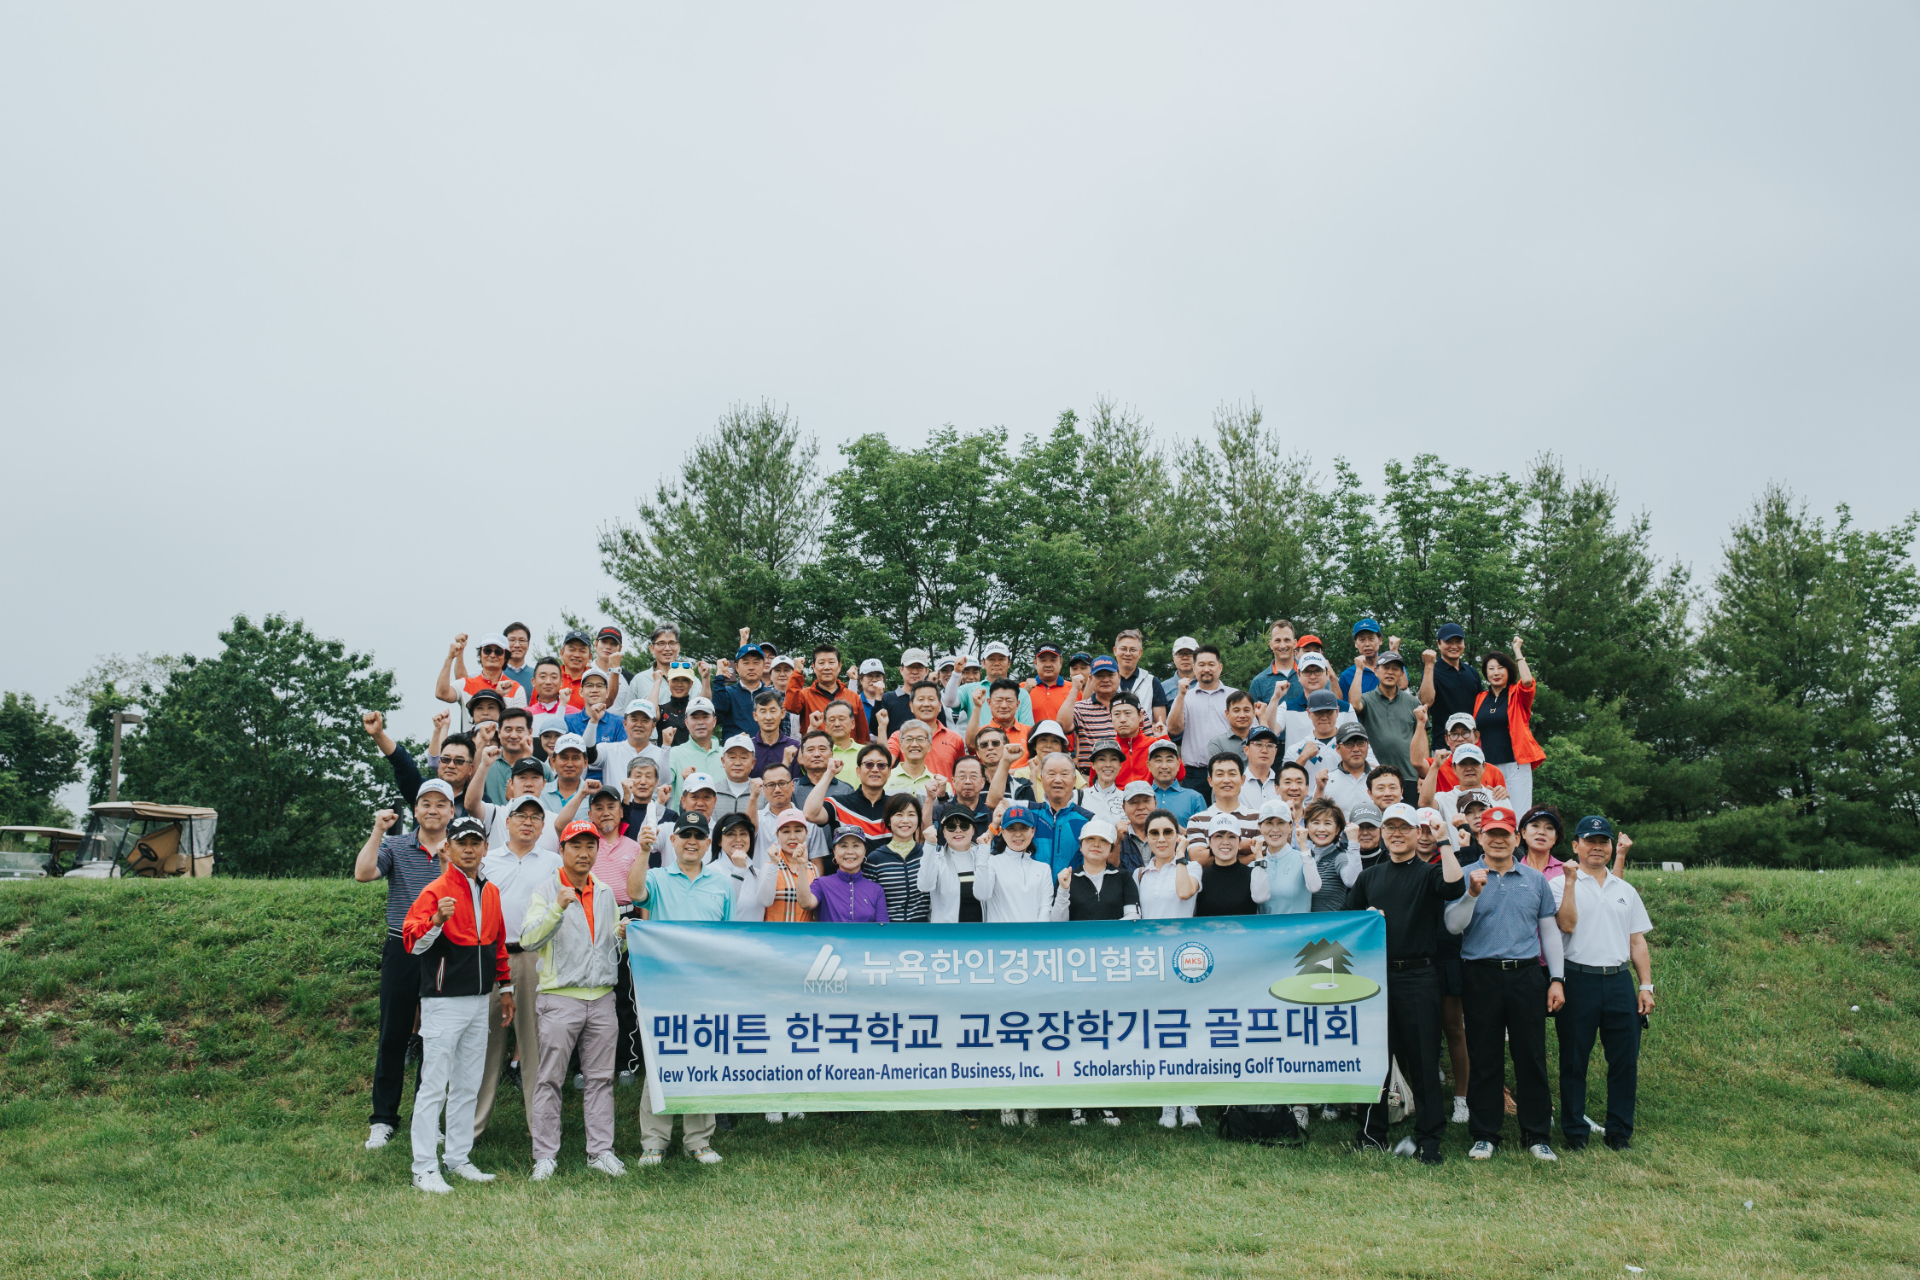 https://nykbi.com/new/wp-content/uploads/2019/07/190619-Scholarship-Fundraising-Golf-Tournament-015.jpg